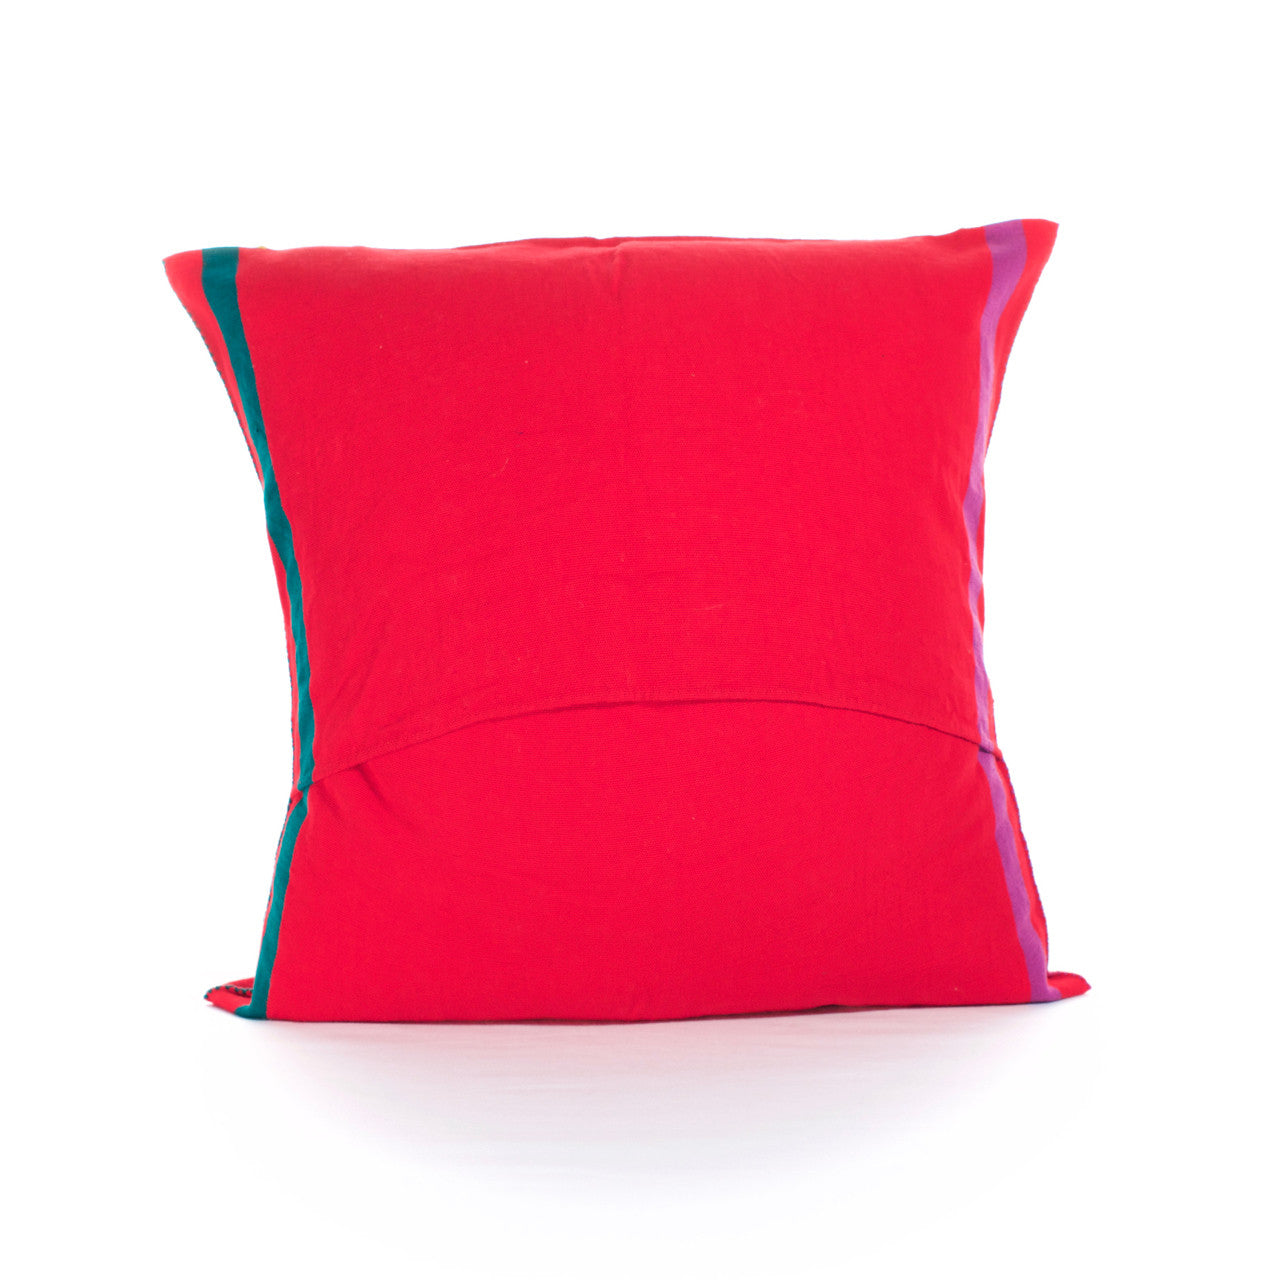 Sapo Cushion - Cielo Collective - Red with Purple & Green Stripe - 2